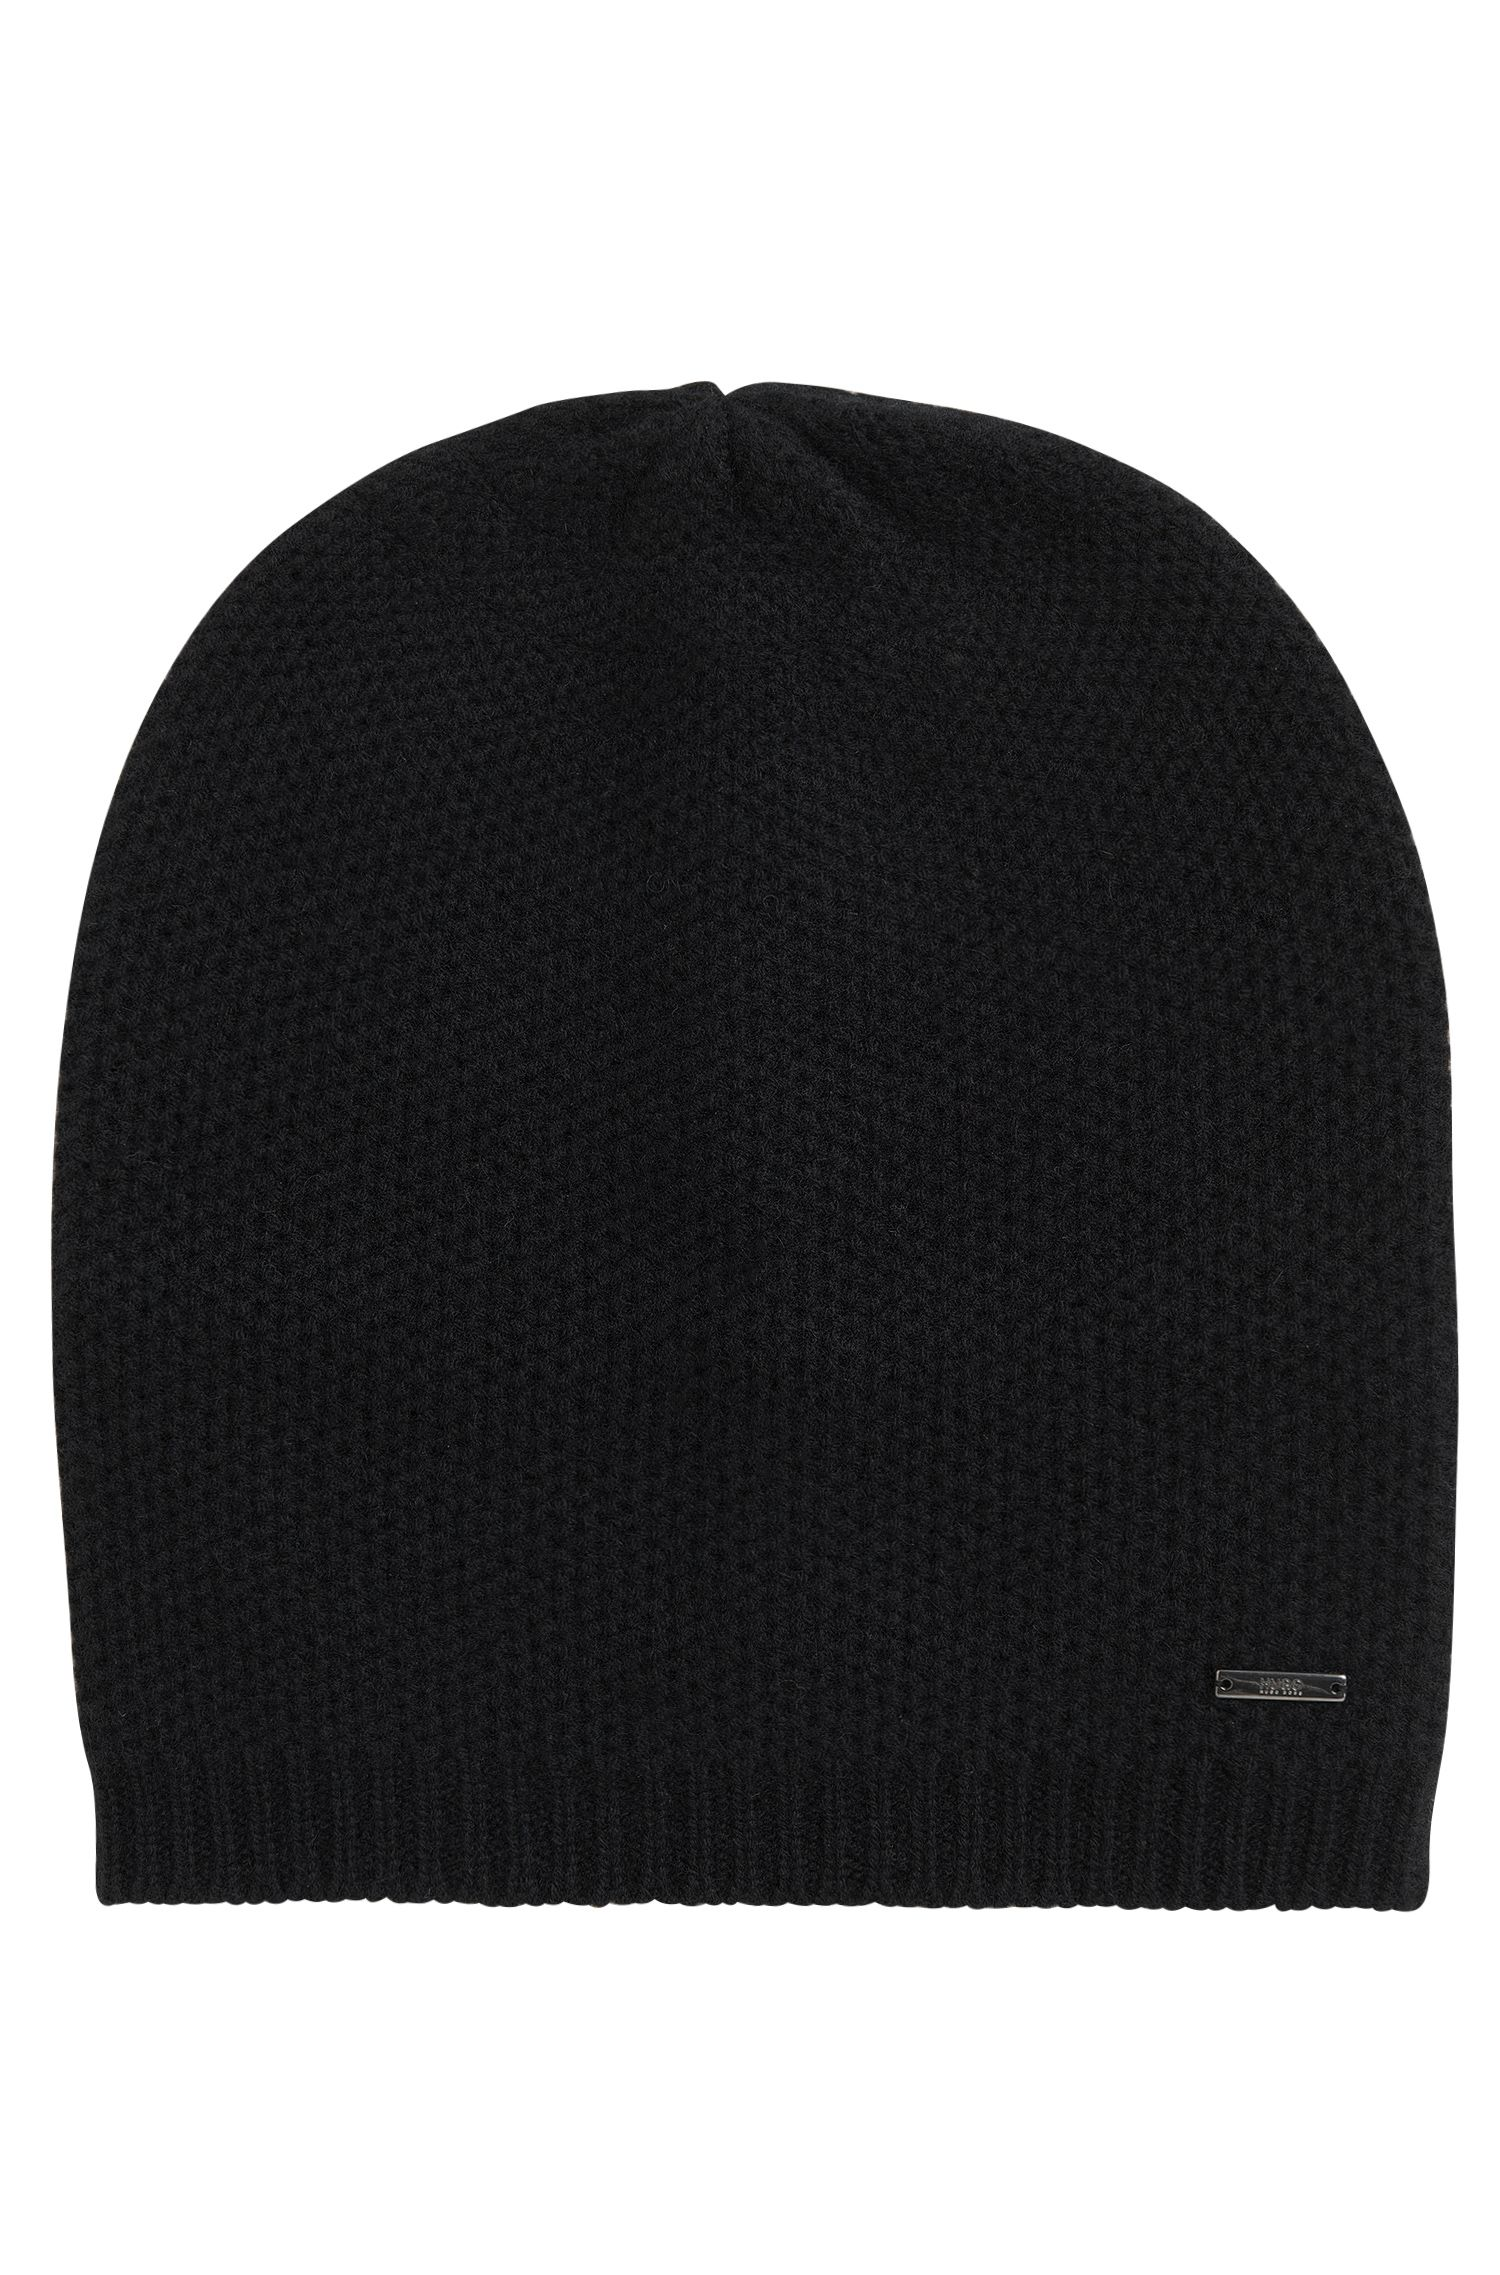 Beanie hat in soft cashmere